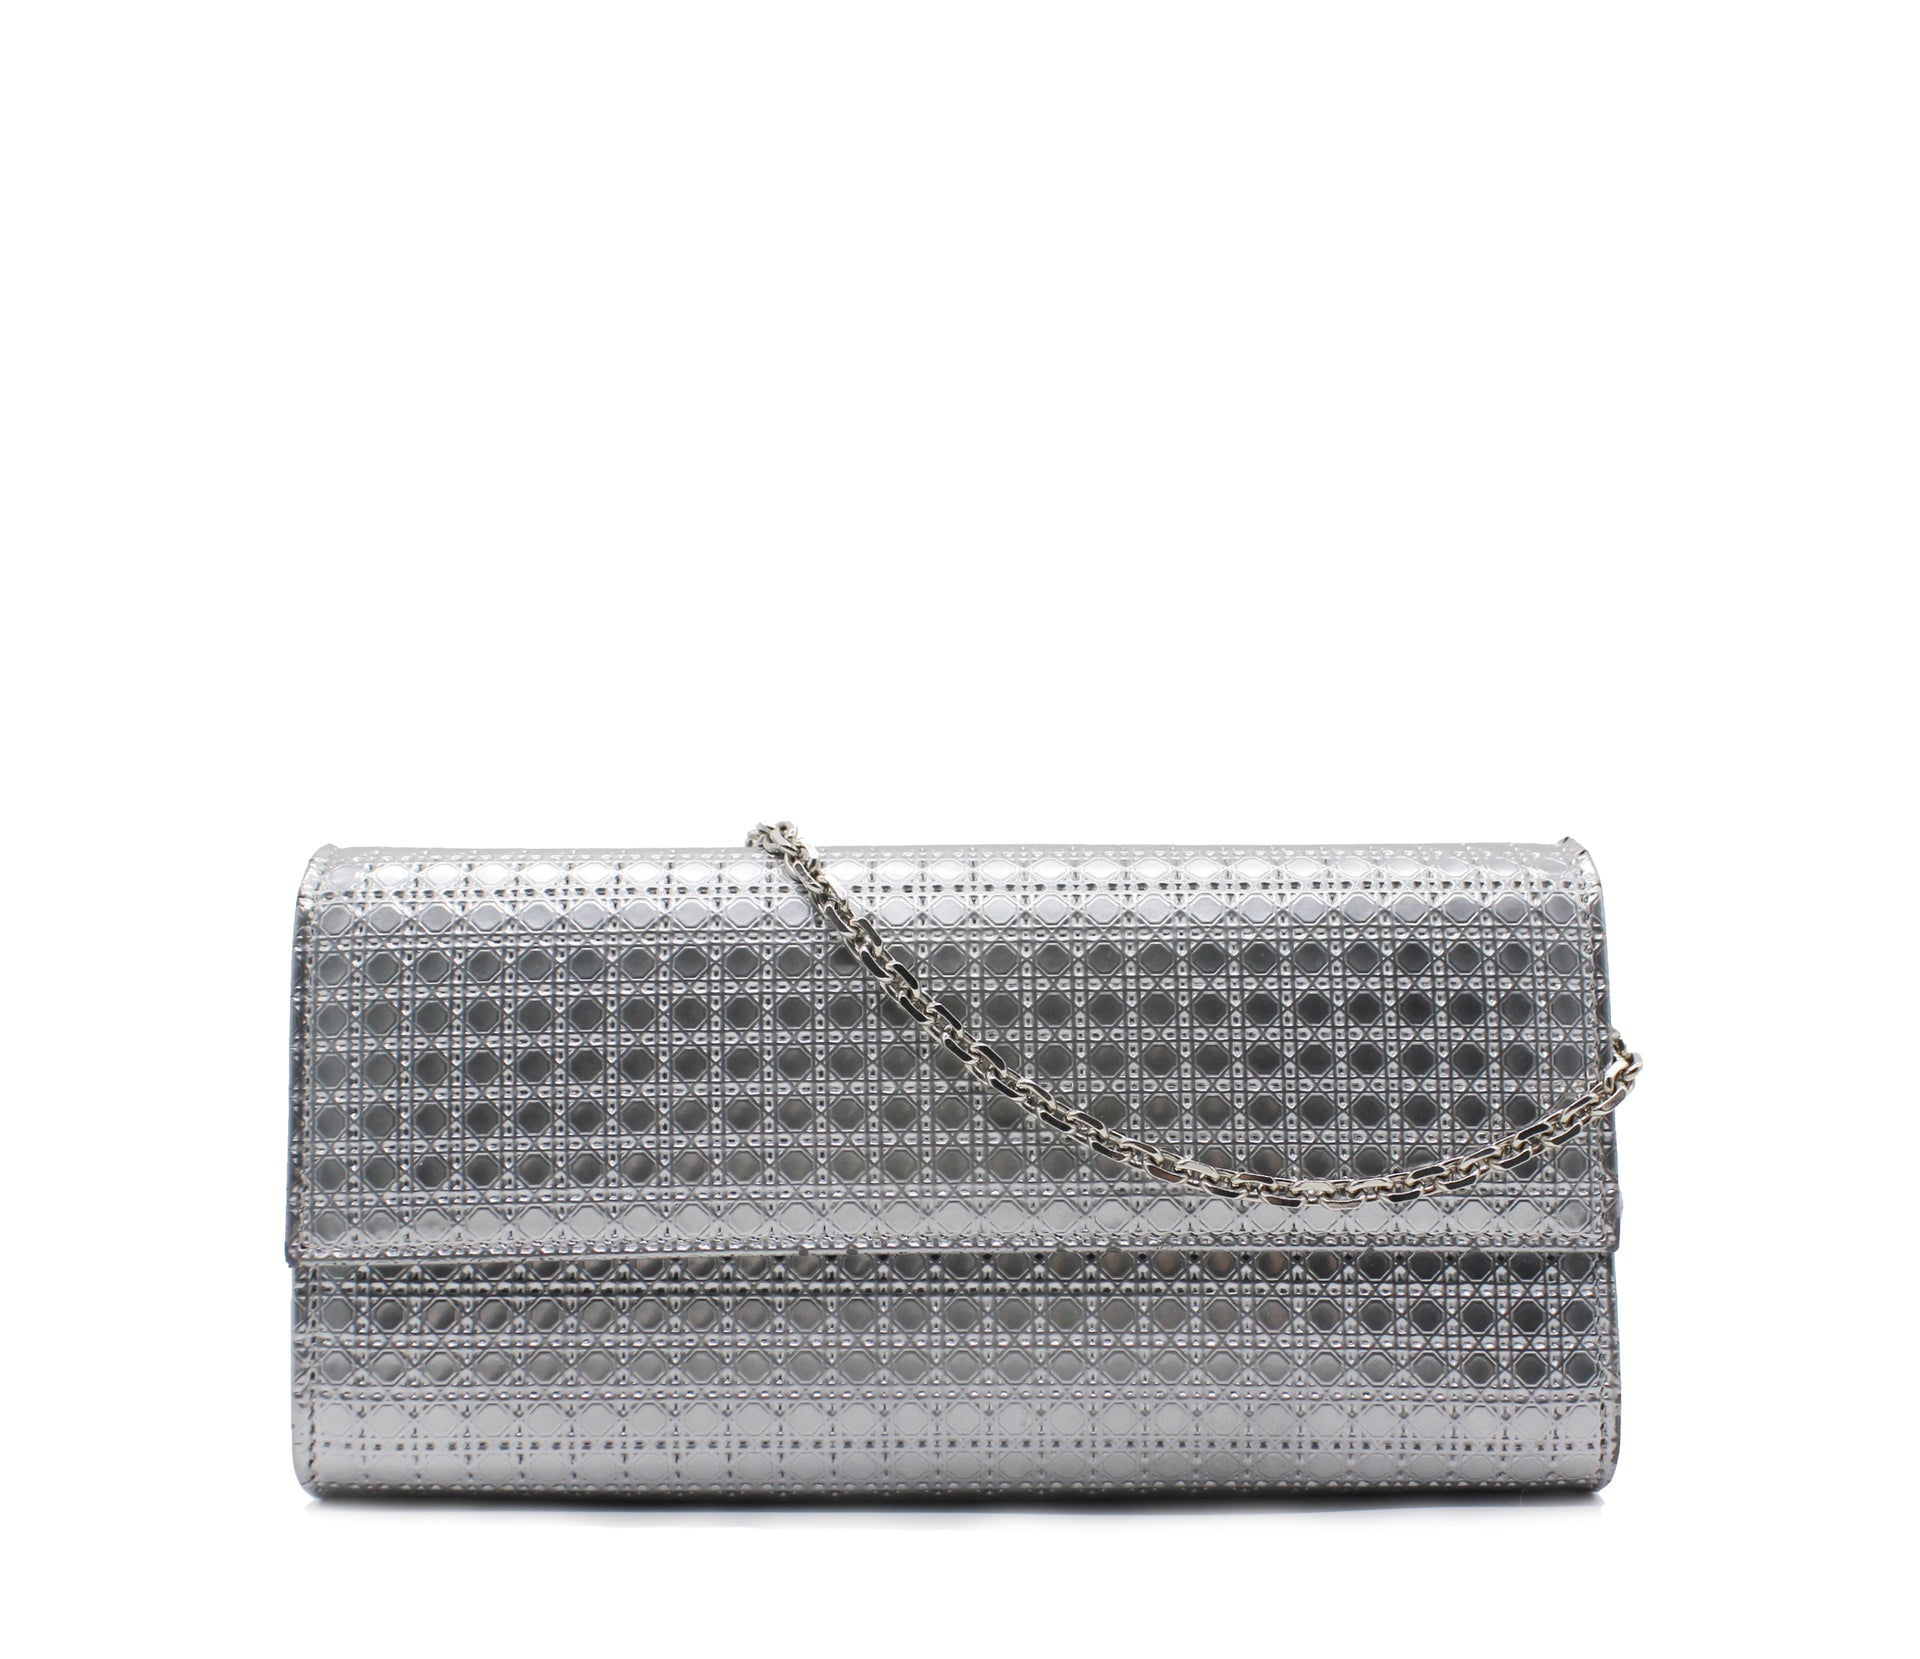 bead778ec Christian Dior Croisiere Chain Wallet Micro Cannage Perforated Calfskin